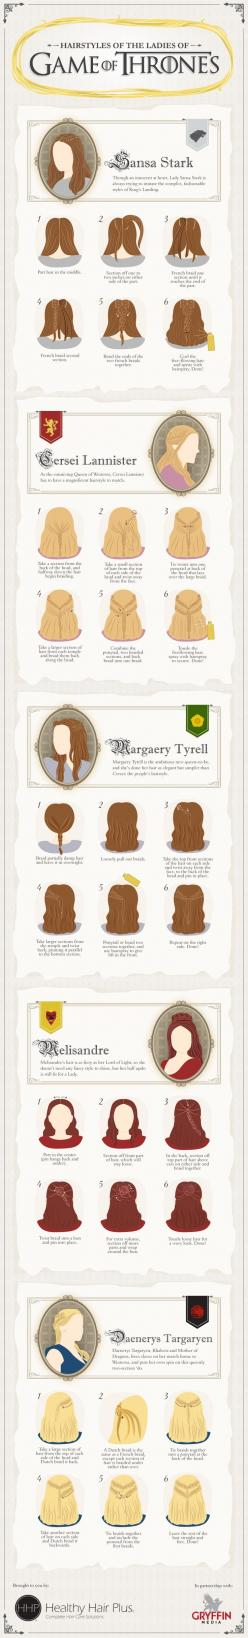 This may be useful for you ladies who actually have long hair. ;) :: How To Hair - DIY Hair Resource From How To Hair Girl | Game of Thrones hair: Hair Ideas, Hair Styles, Hair Tutorial, Makeup, Thrones Hairstyles, Gameofthrones, Beauty, Game Of Thrones